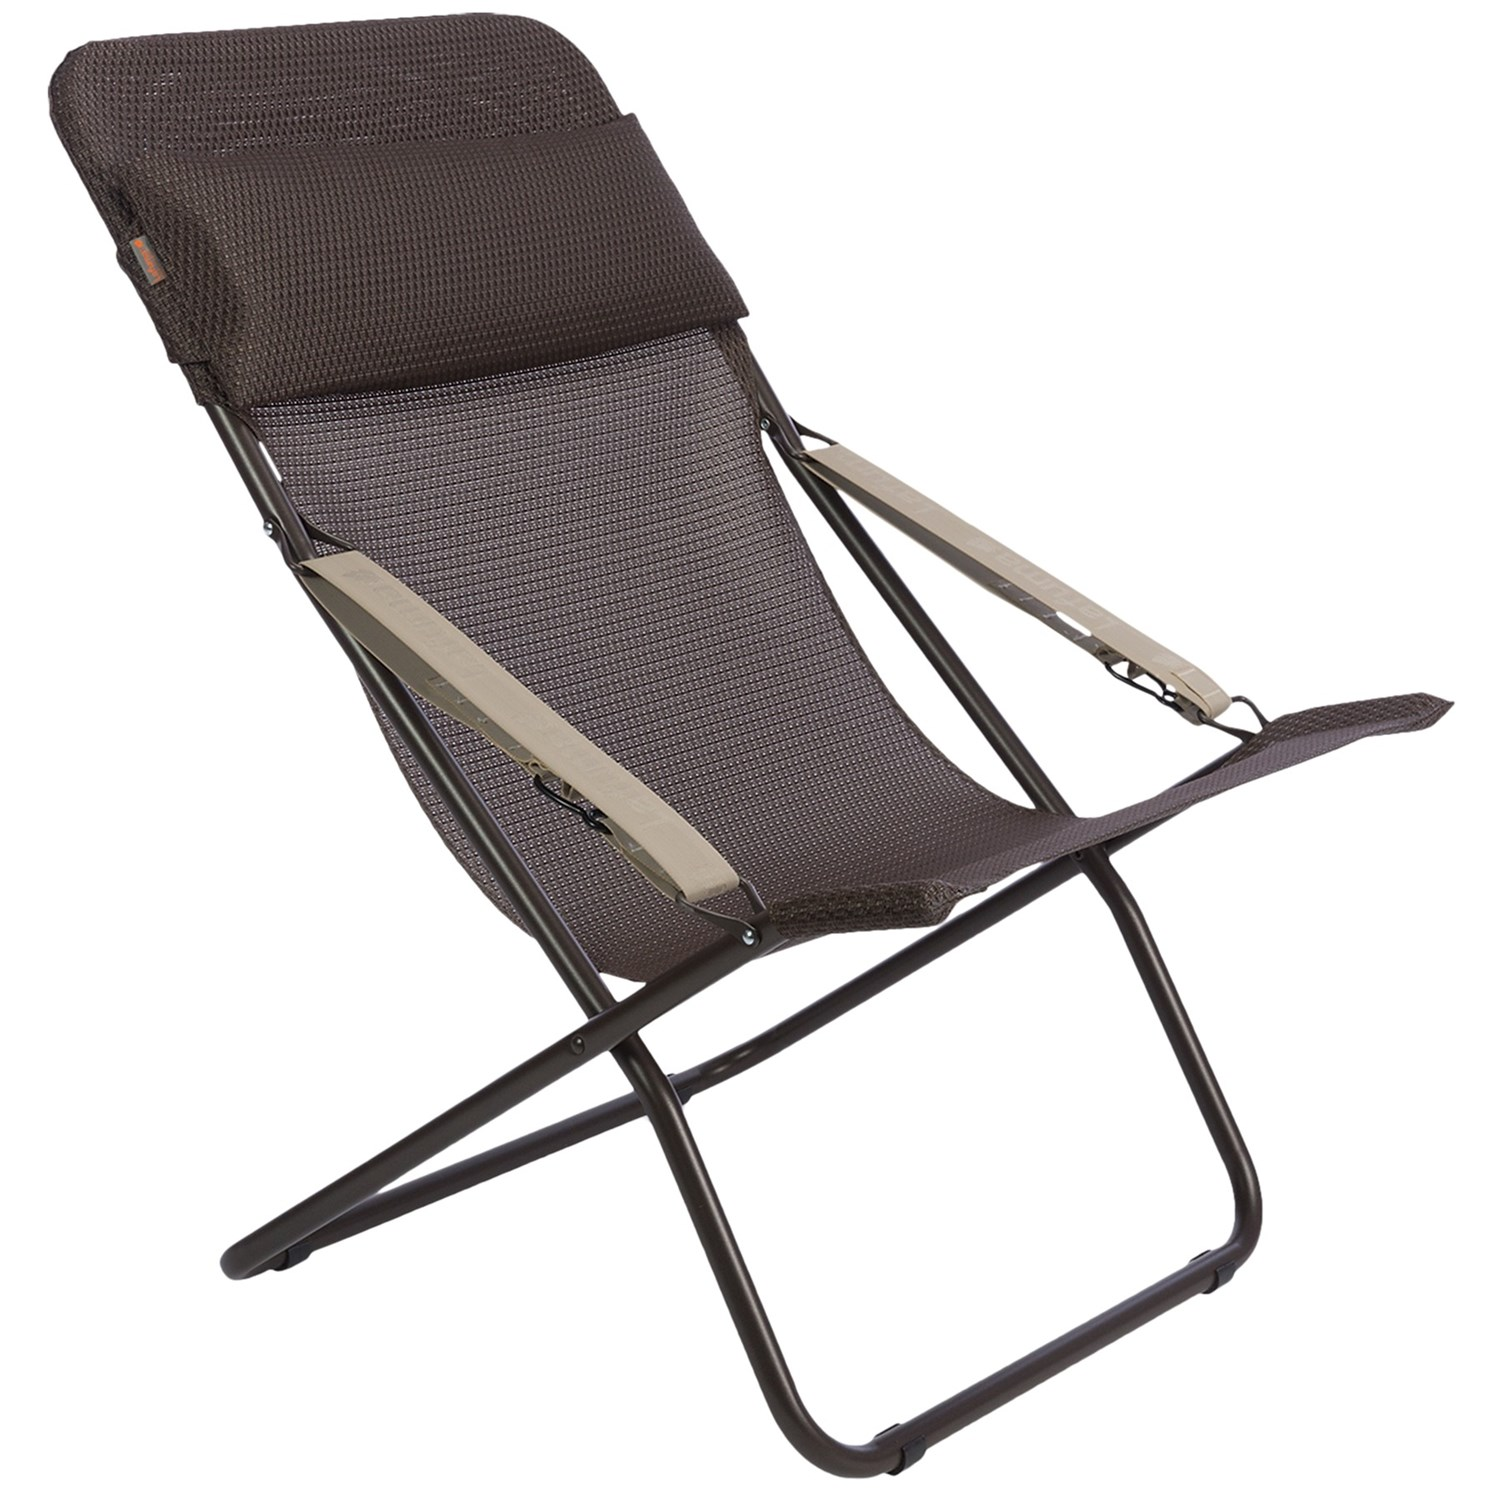 Brief Overview About The Folding Patio Chairs darbylanefurniture